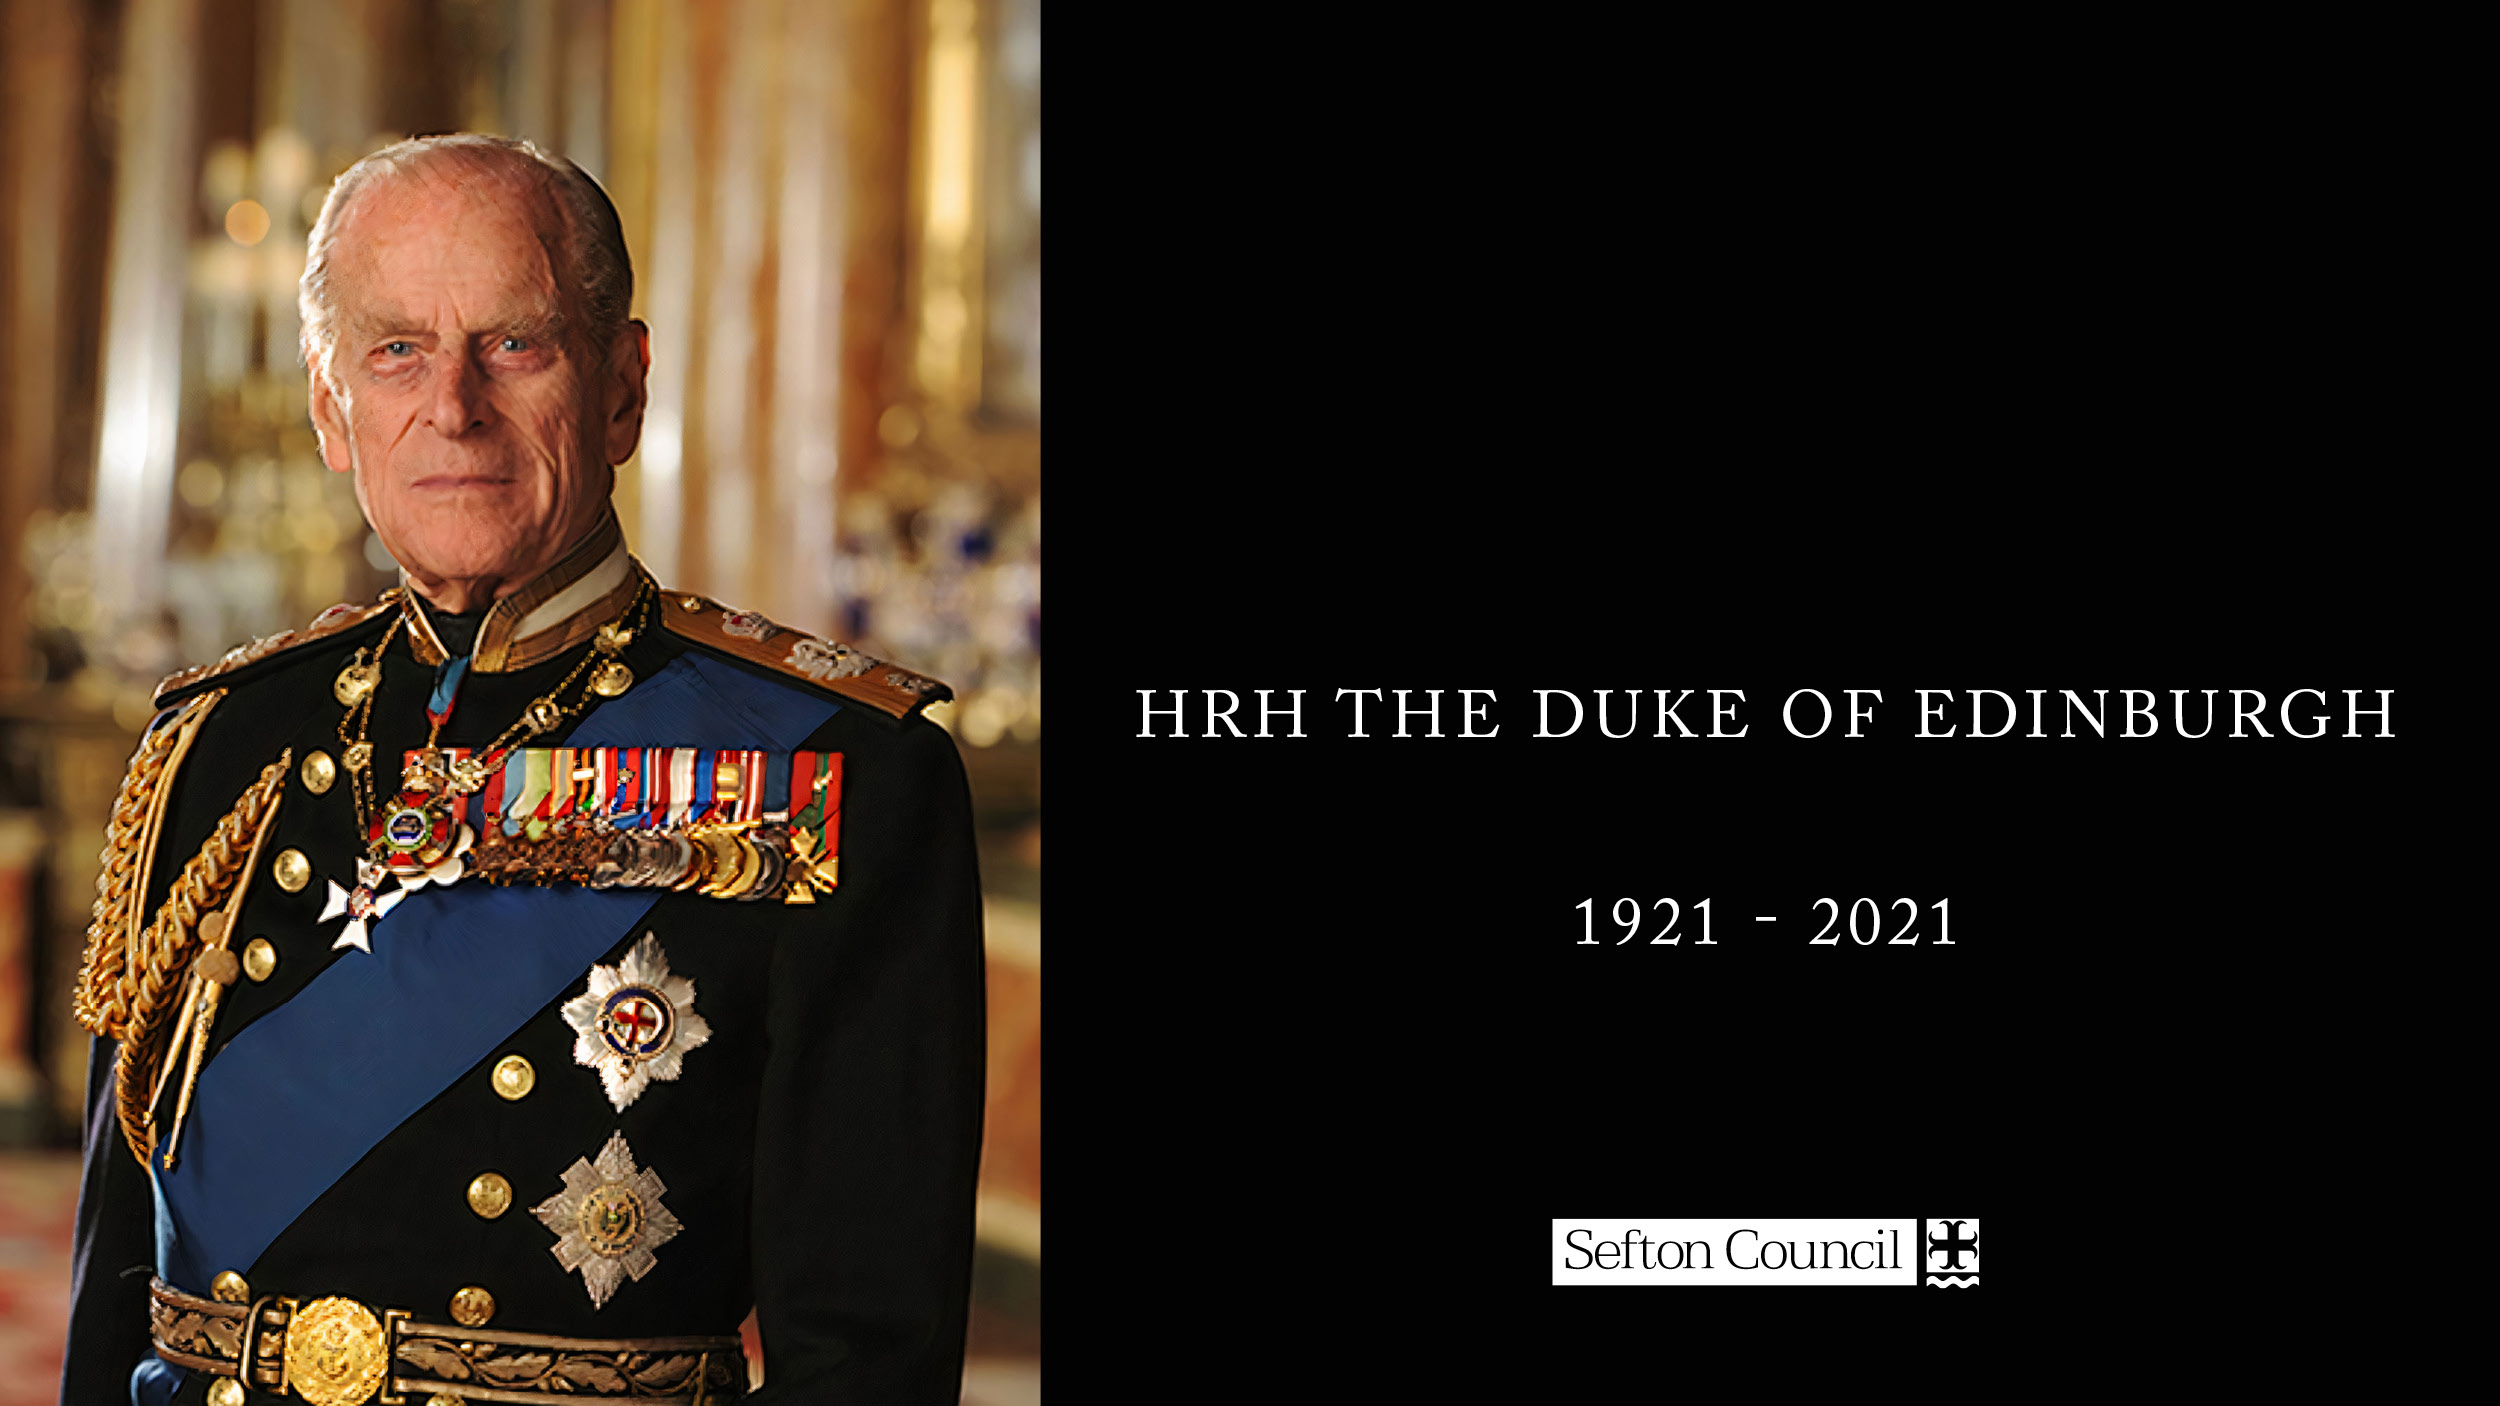 HRH Prince Philip, Duke of Edinburgh in full dress uniform